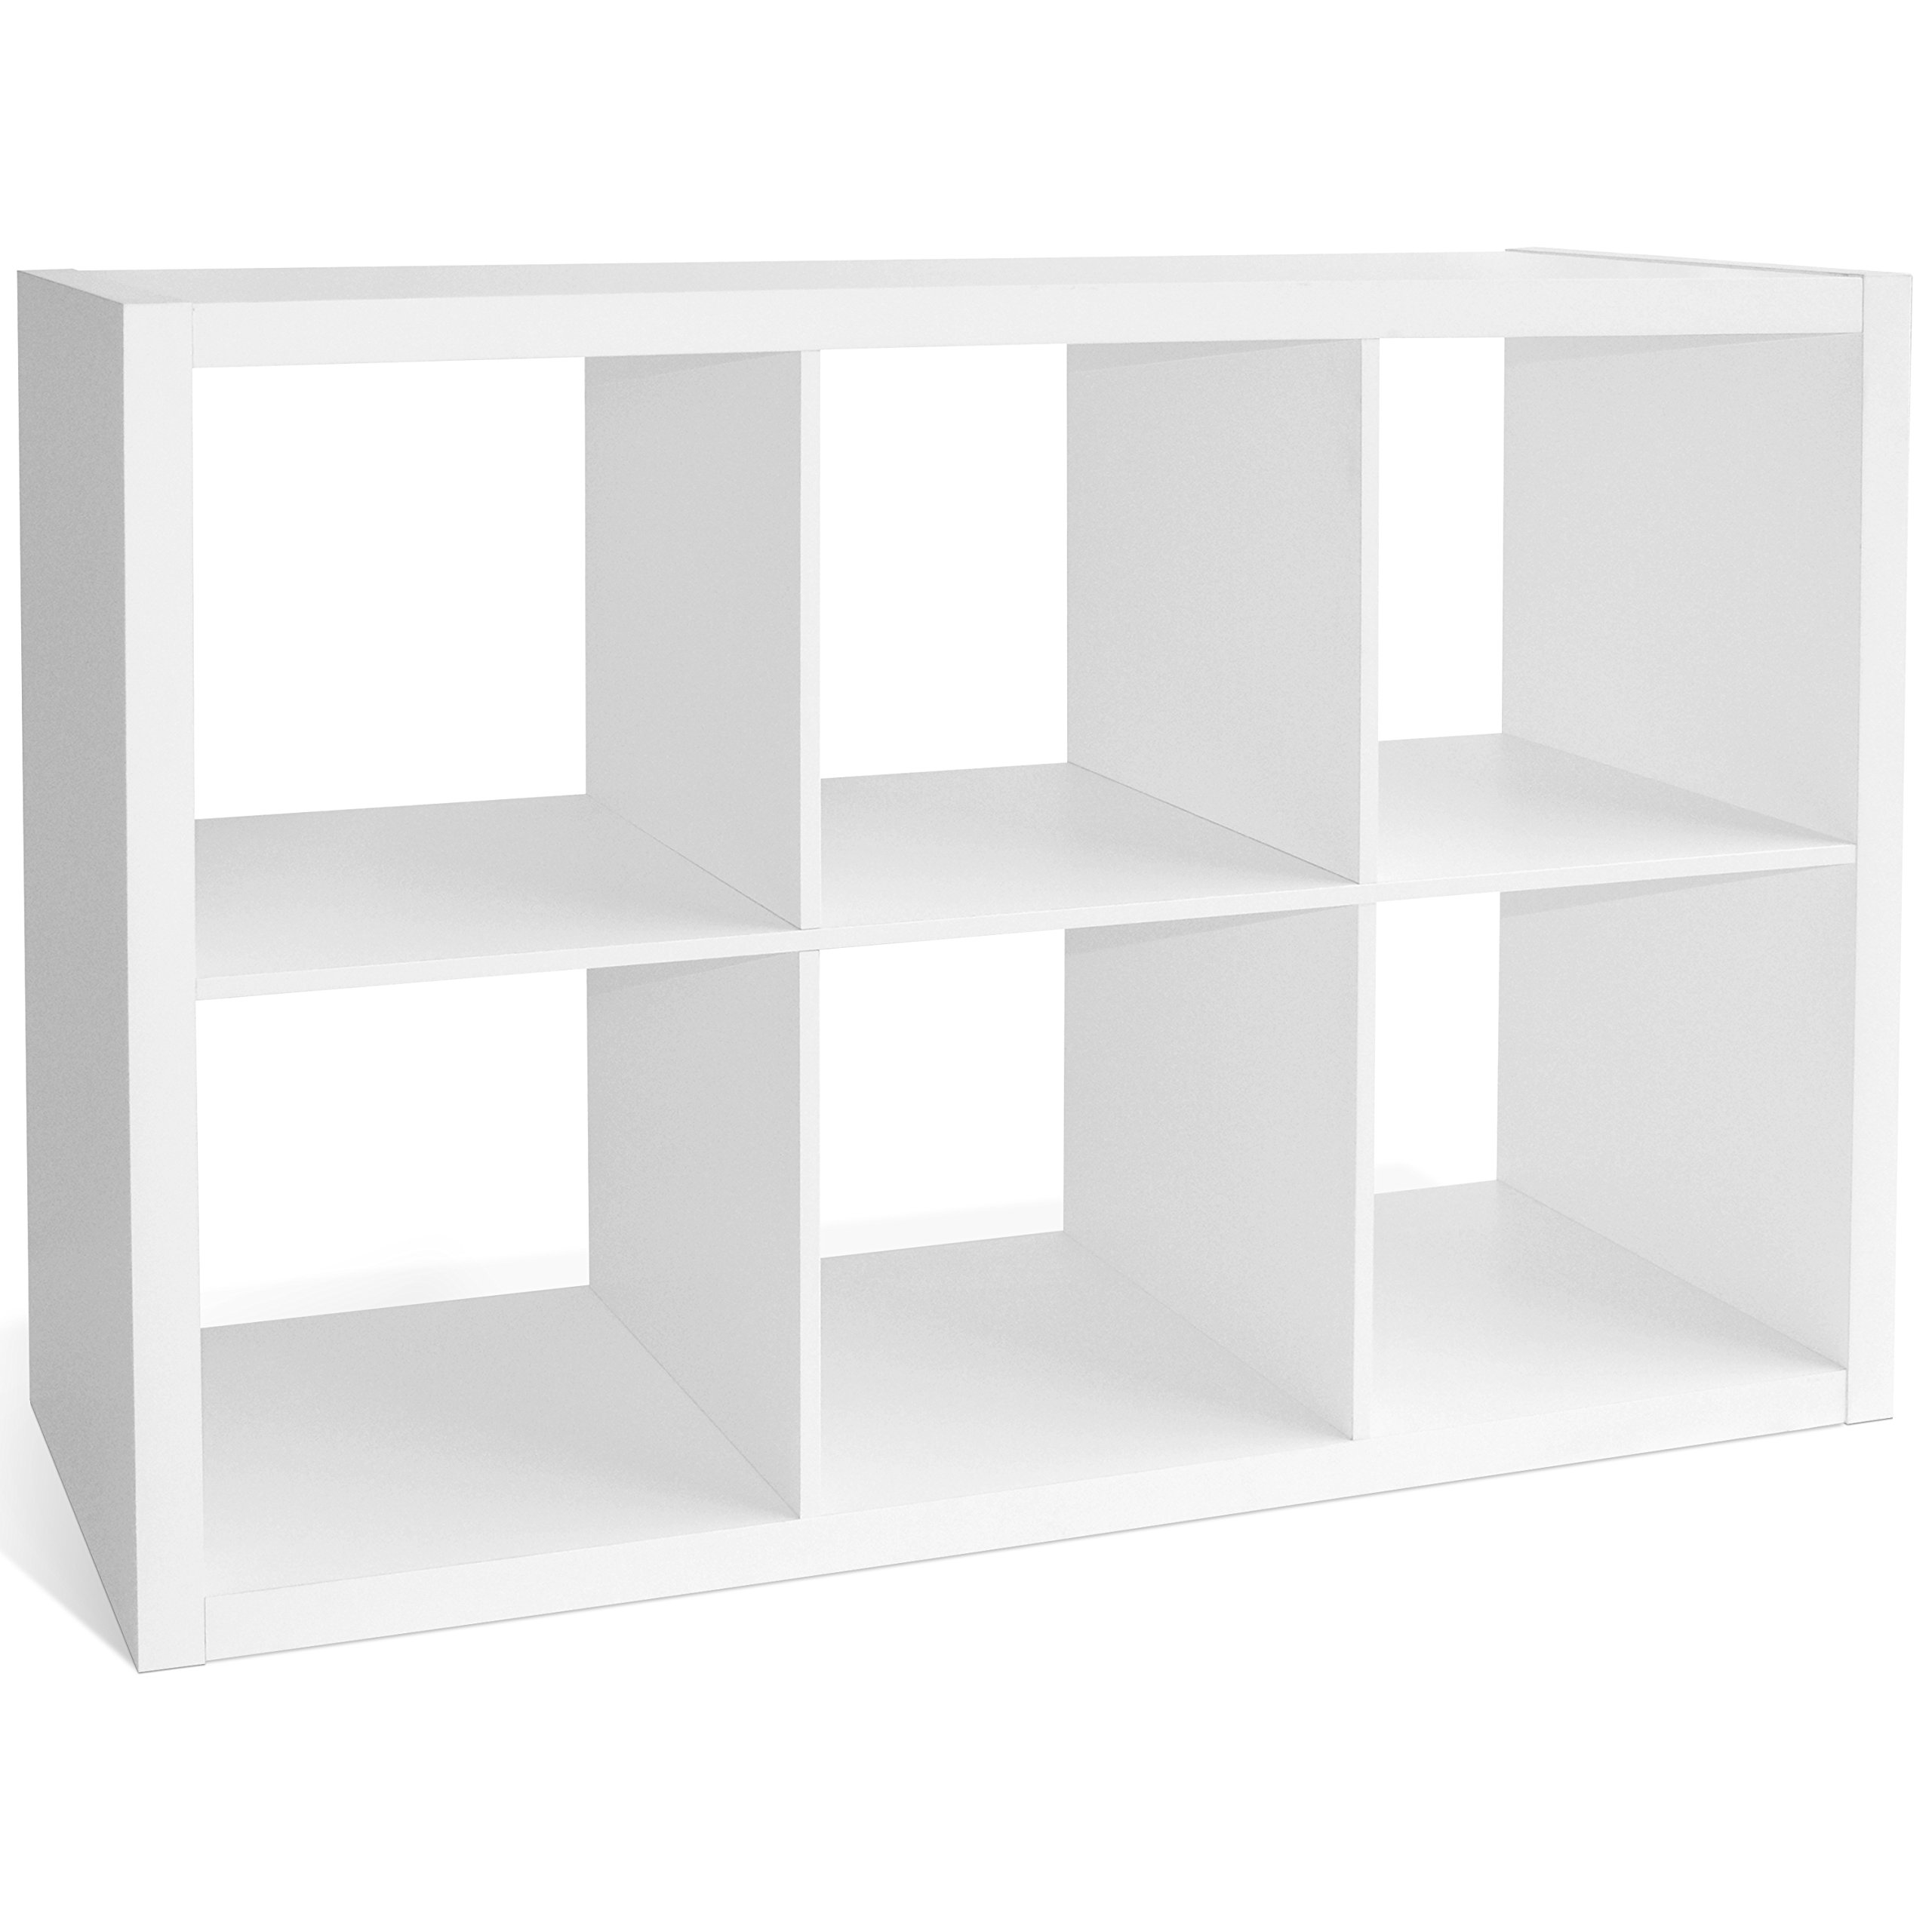 CAP LIVING 2/4/6 Cube Organizer w/Extra Wide Frame, Sturdy Storage Room Divider, 2 x 1/2 x 2/2 x 3 Bookcase, Colors Available in Espresso and White (White, 6 Cube)